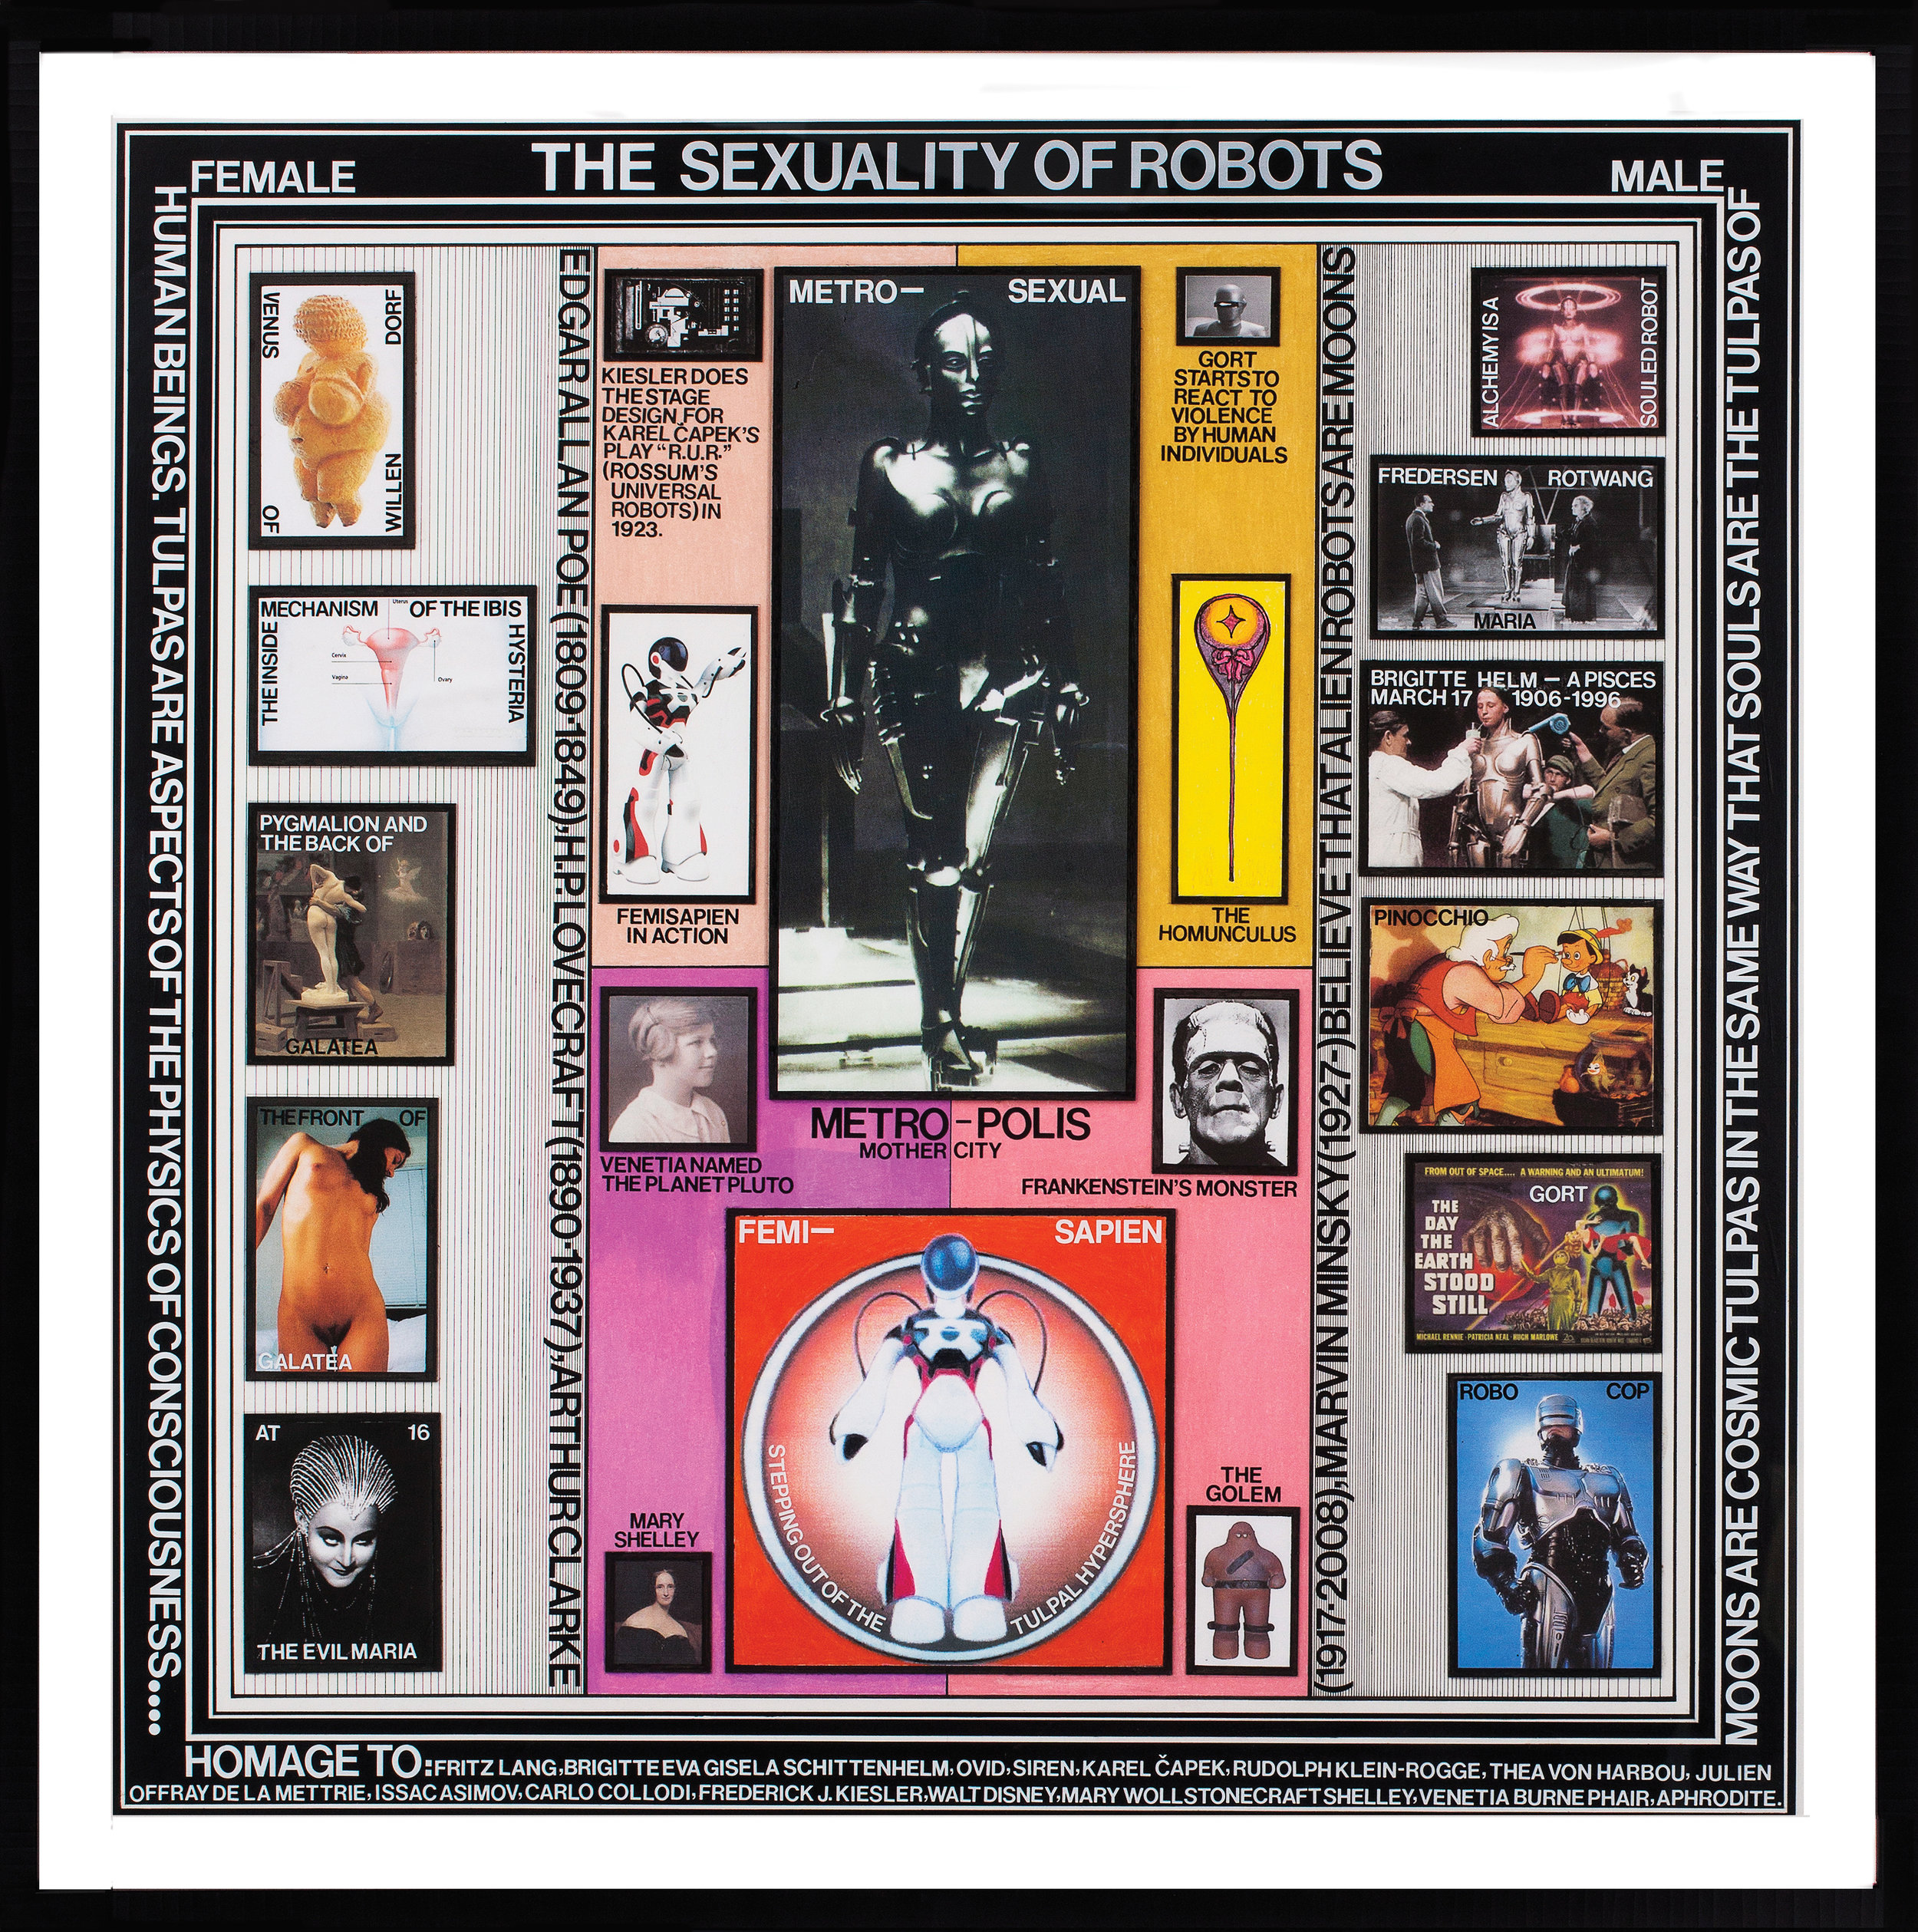 Paul-Laffoley-THE-SEXUALITY-OF ROBOTS-2009-10.jpg